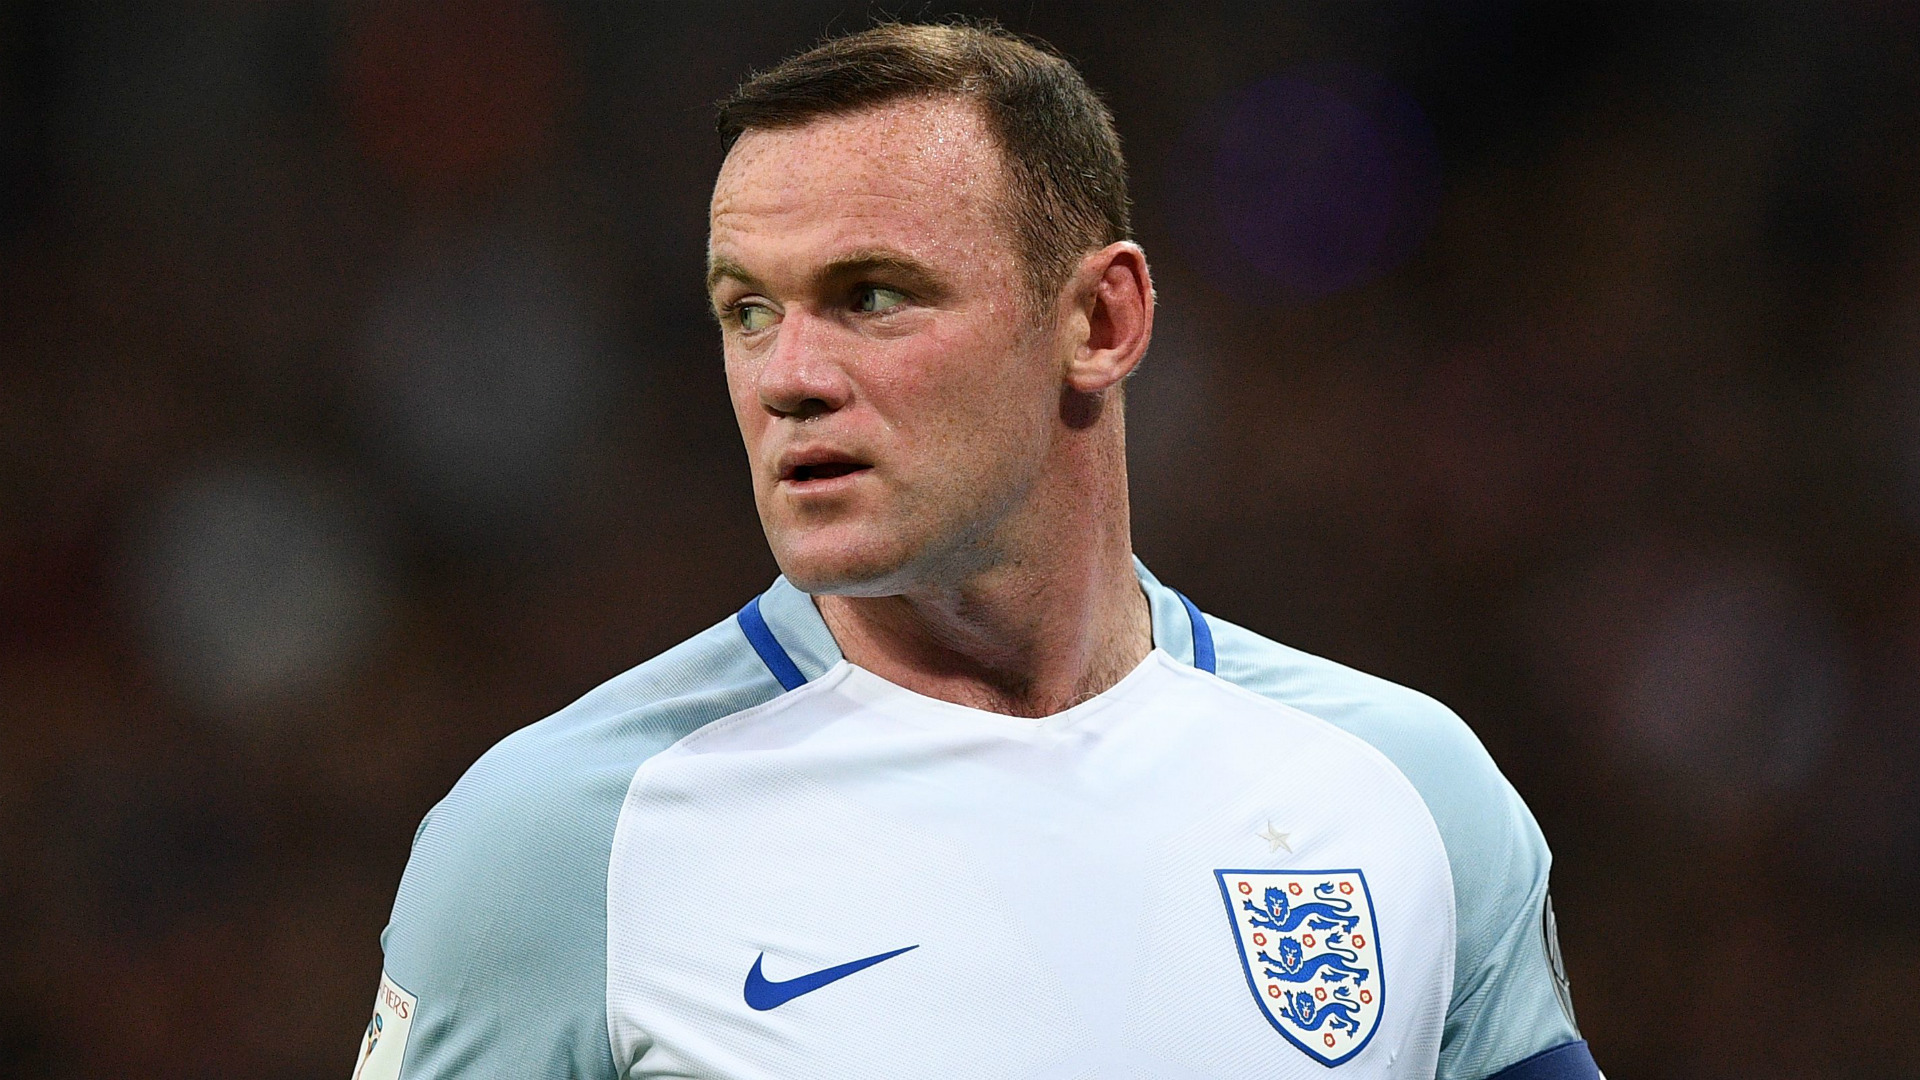 Rooney realises some people don't approve of his England return